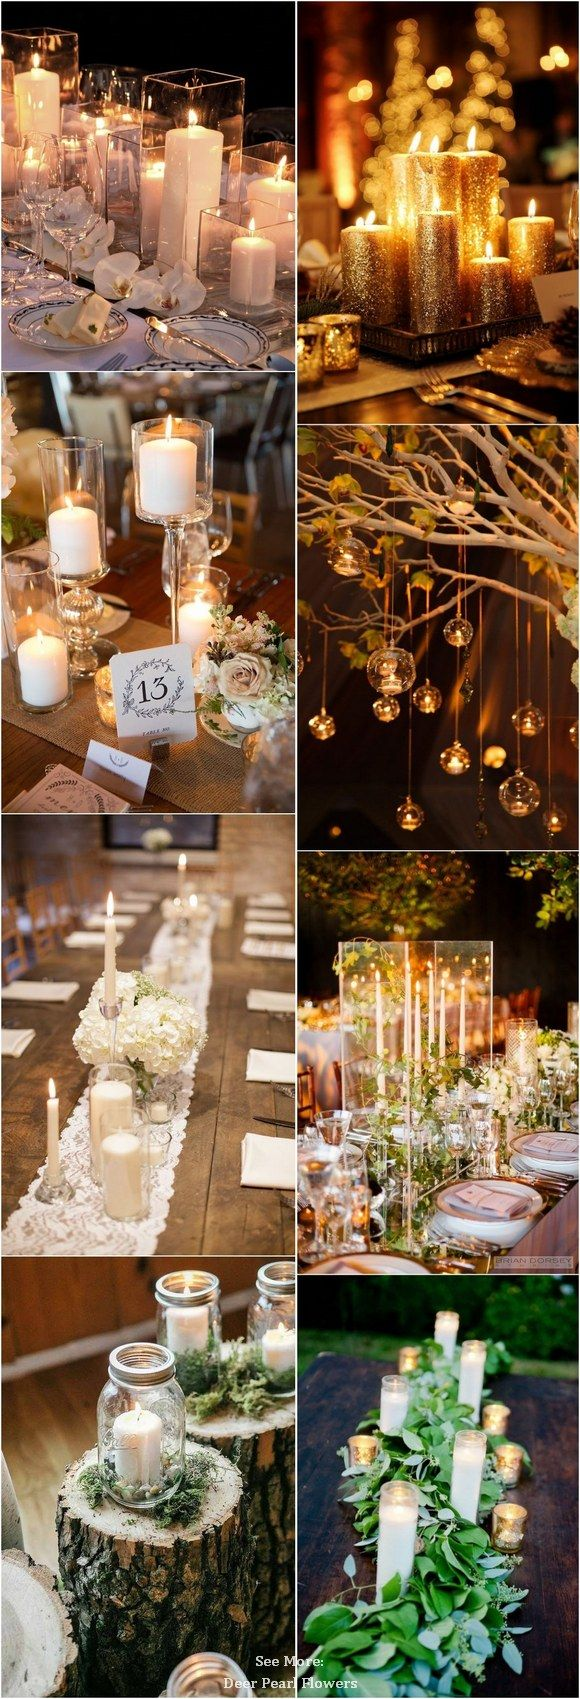 40 Chic Romantic Wedding Ideas Using Candles Romantic weddings - halloween wedding decoration ideas